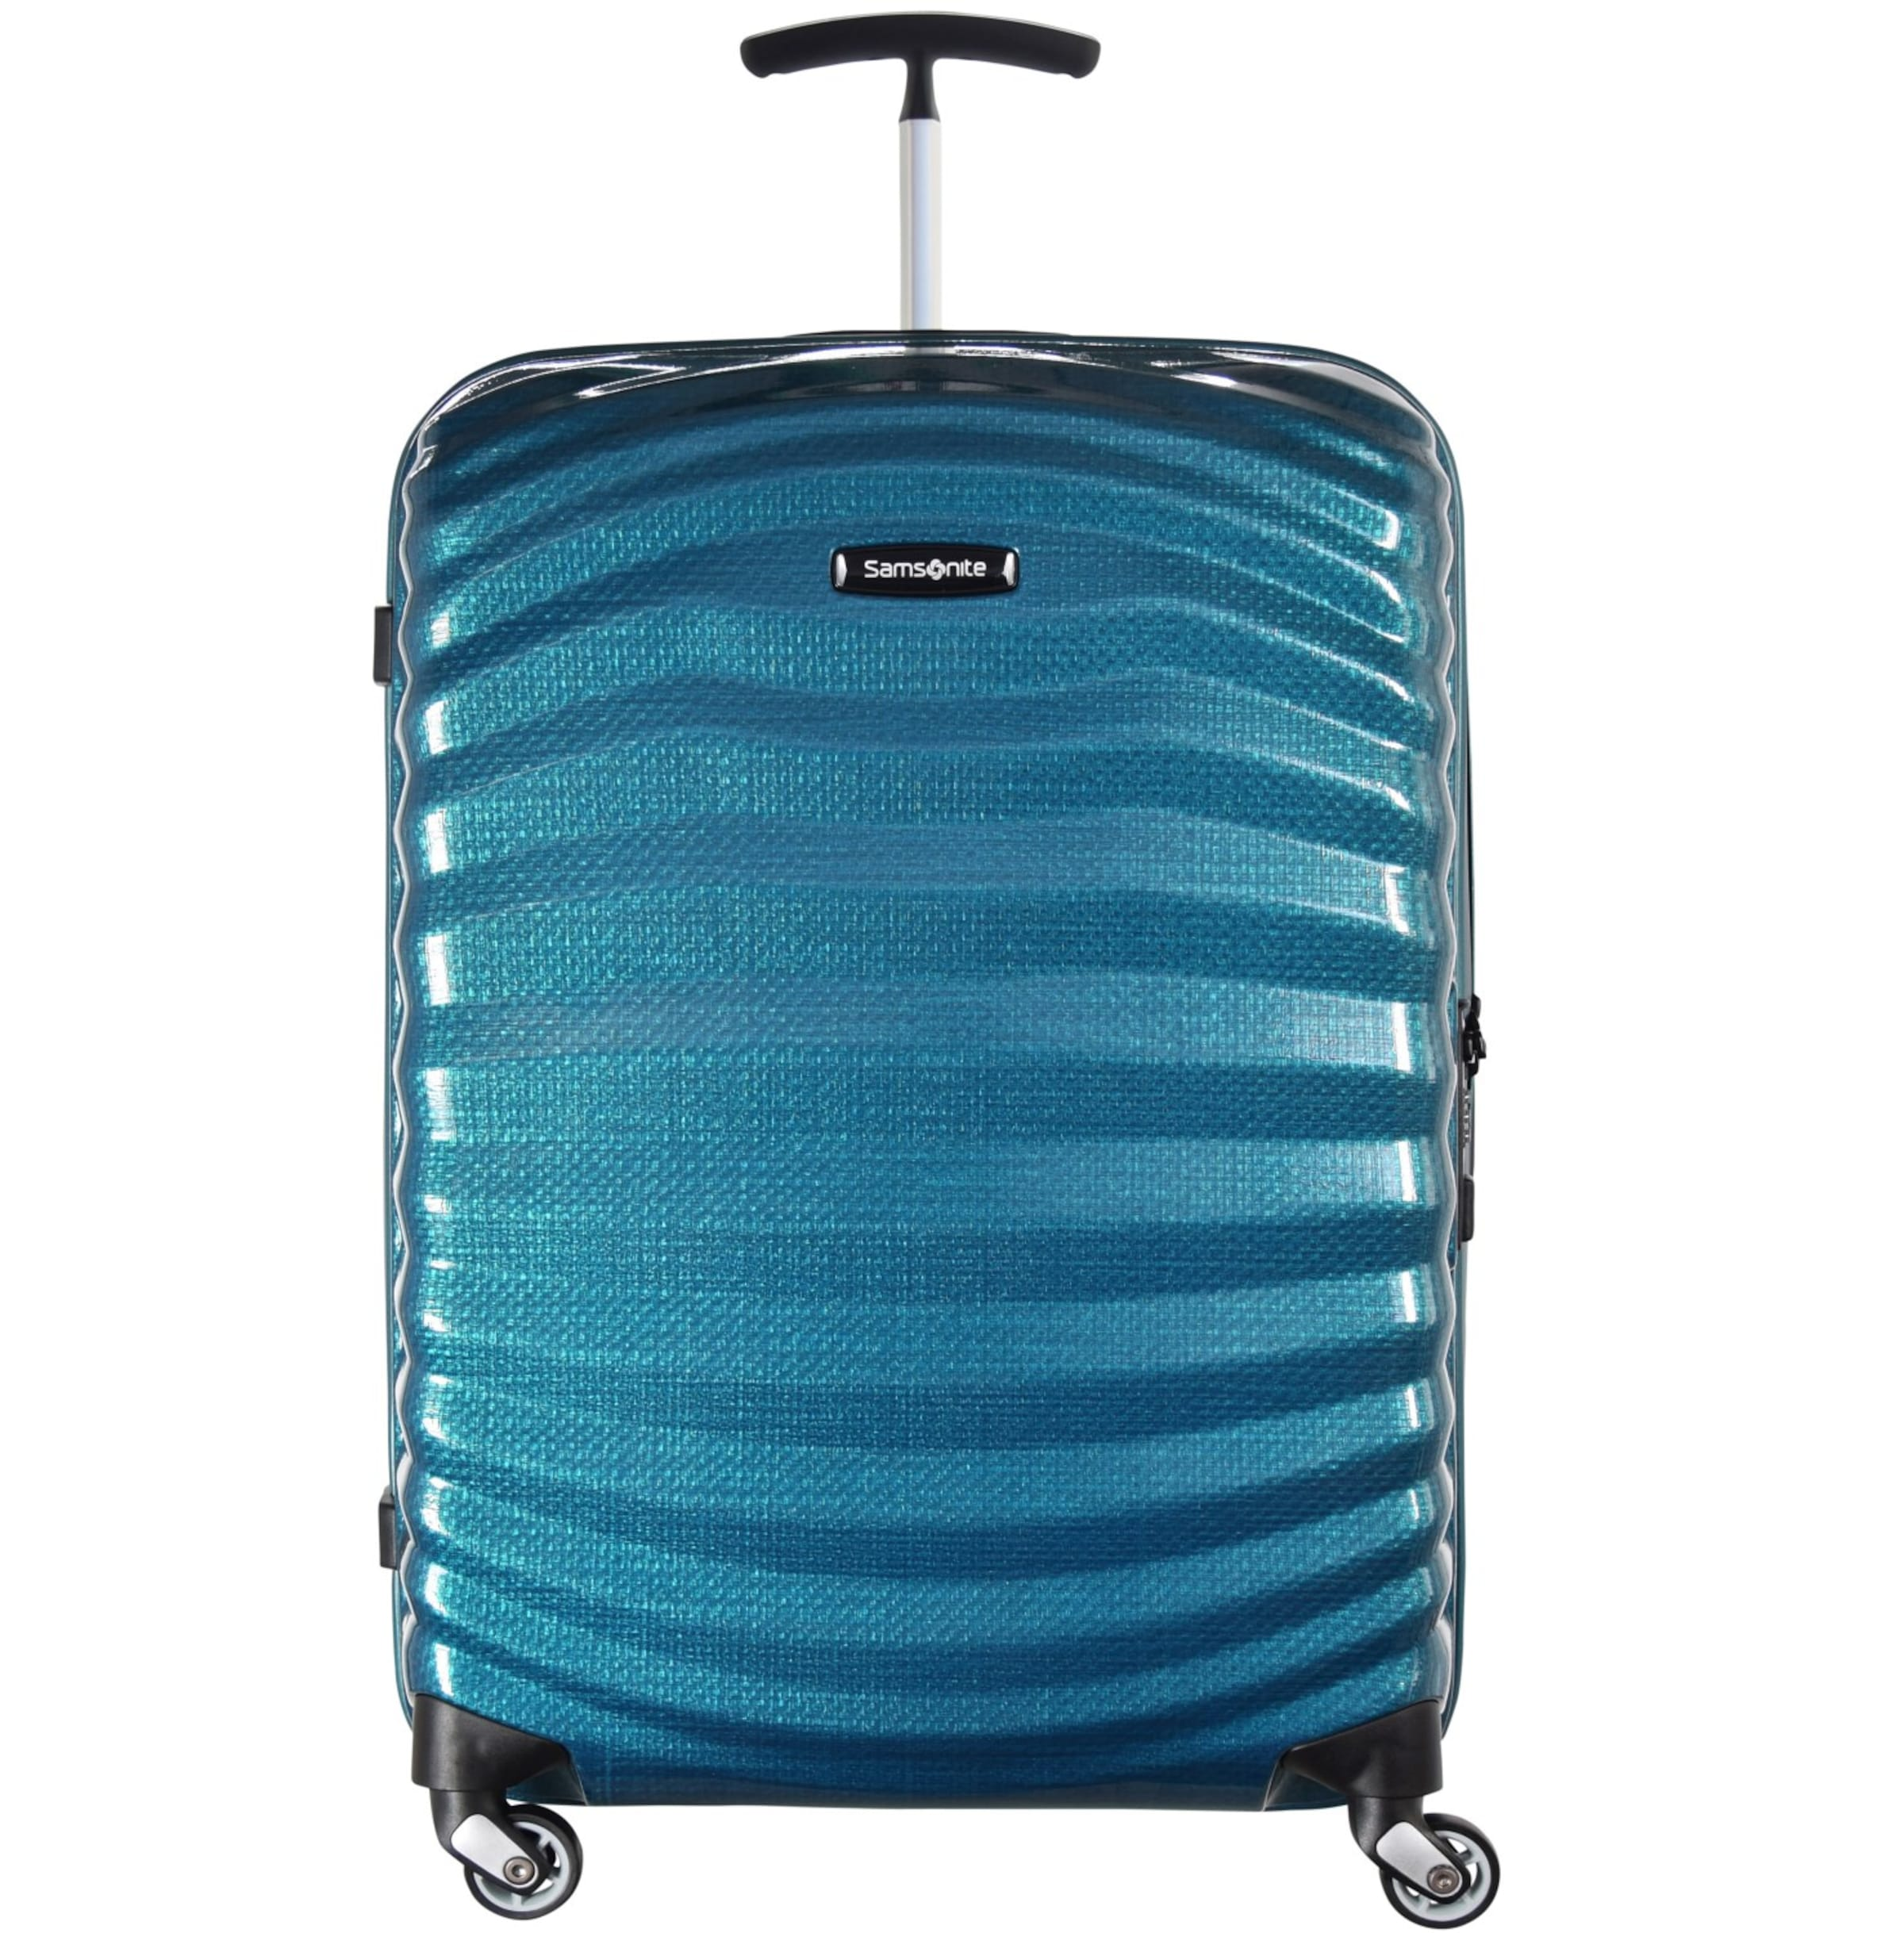 Samsonite 'lite 4 Trolley Schwarz rollen' In shock Spinner rshQxtBdC